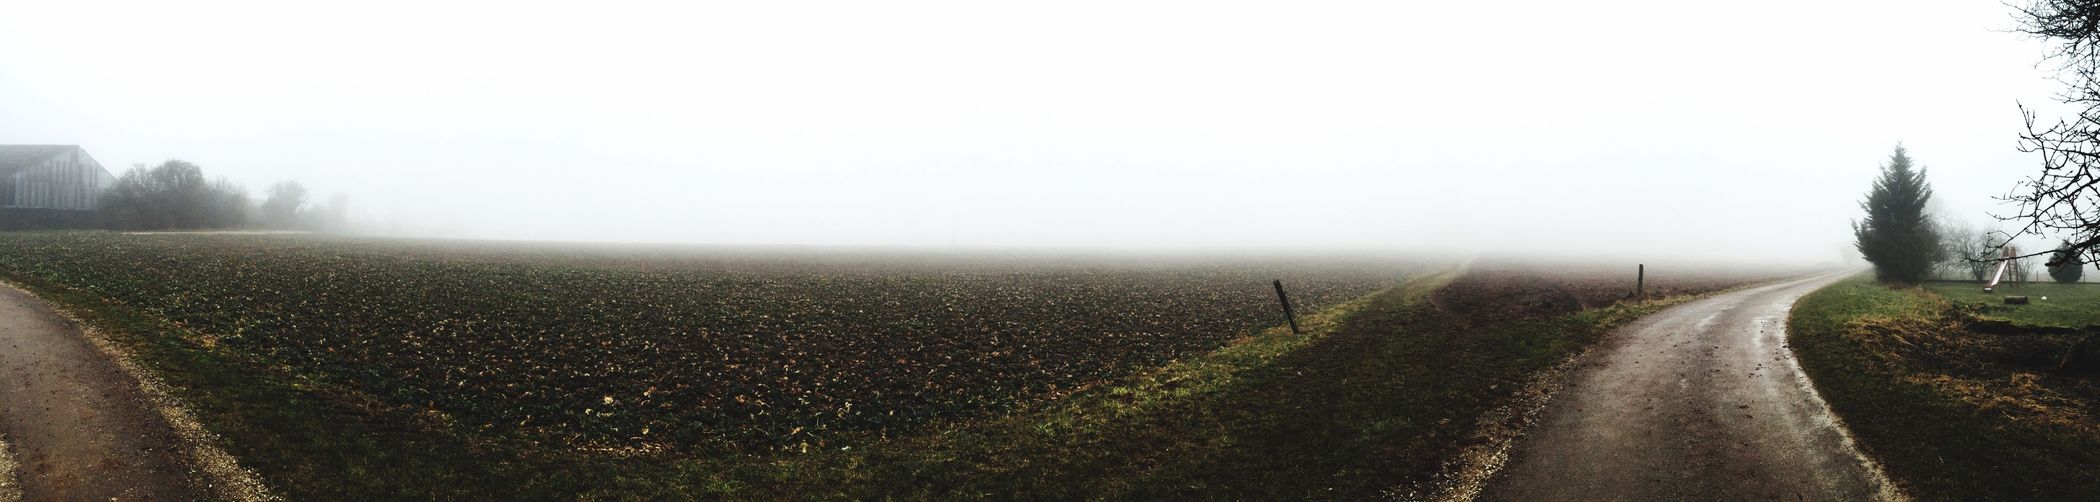 IPhoneography Panorama Fog Alone